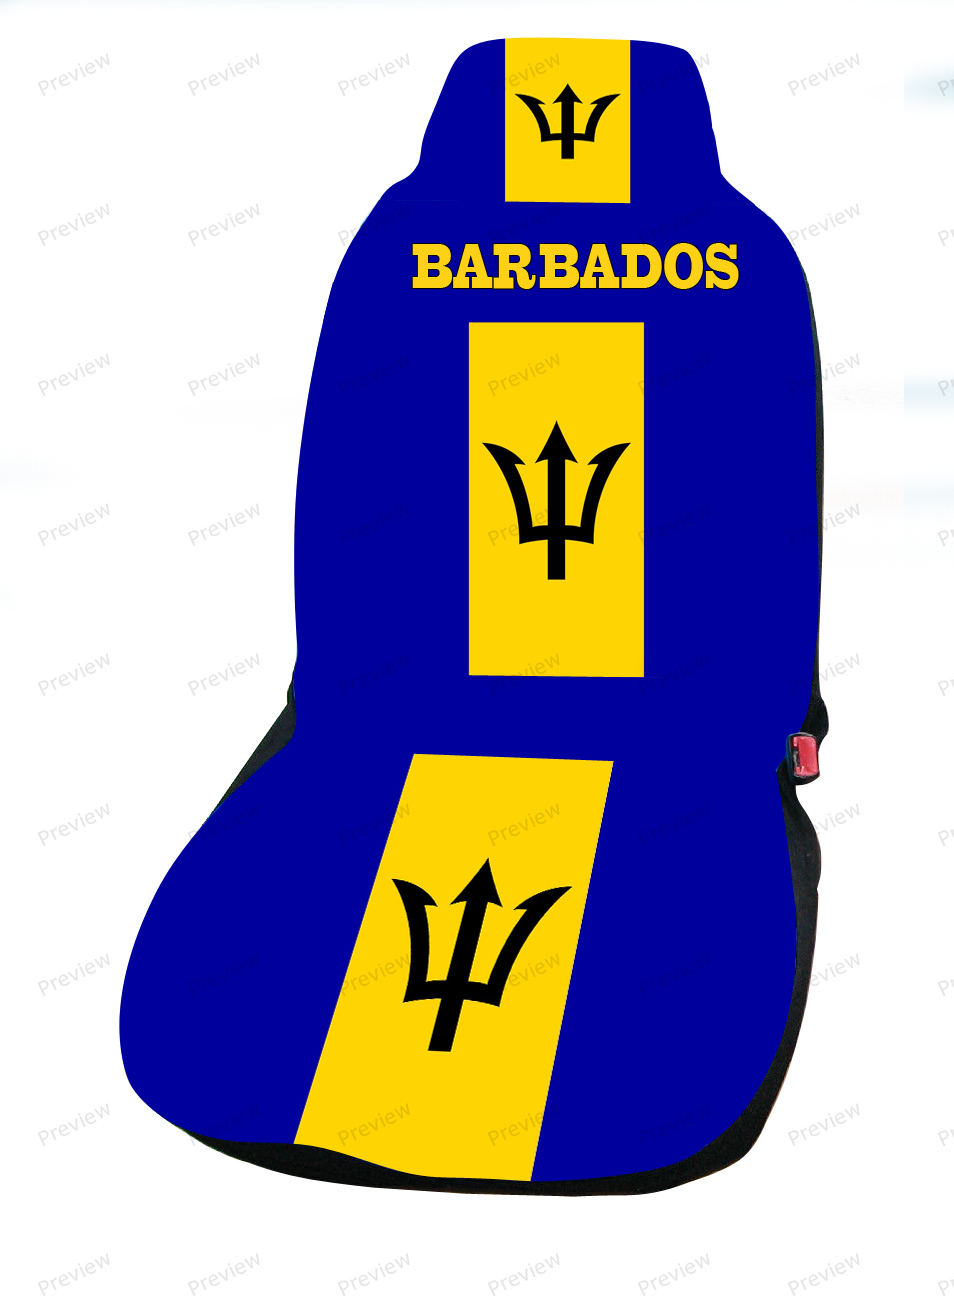 images/Barbados image car cover seat.jpg